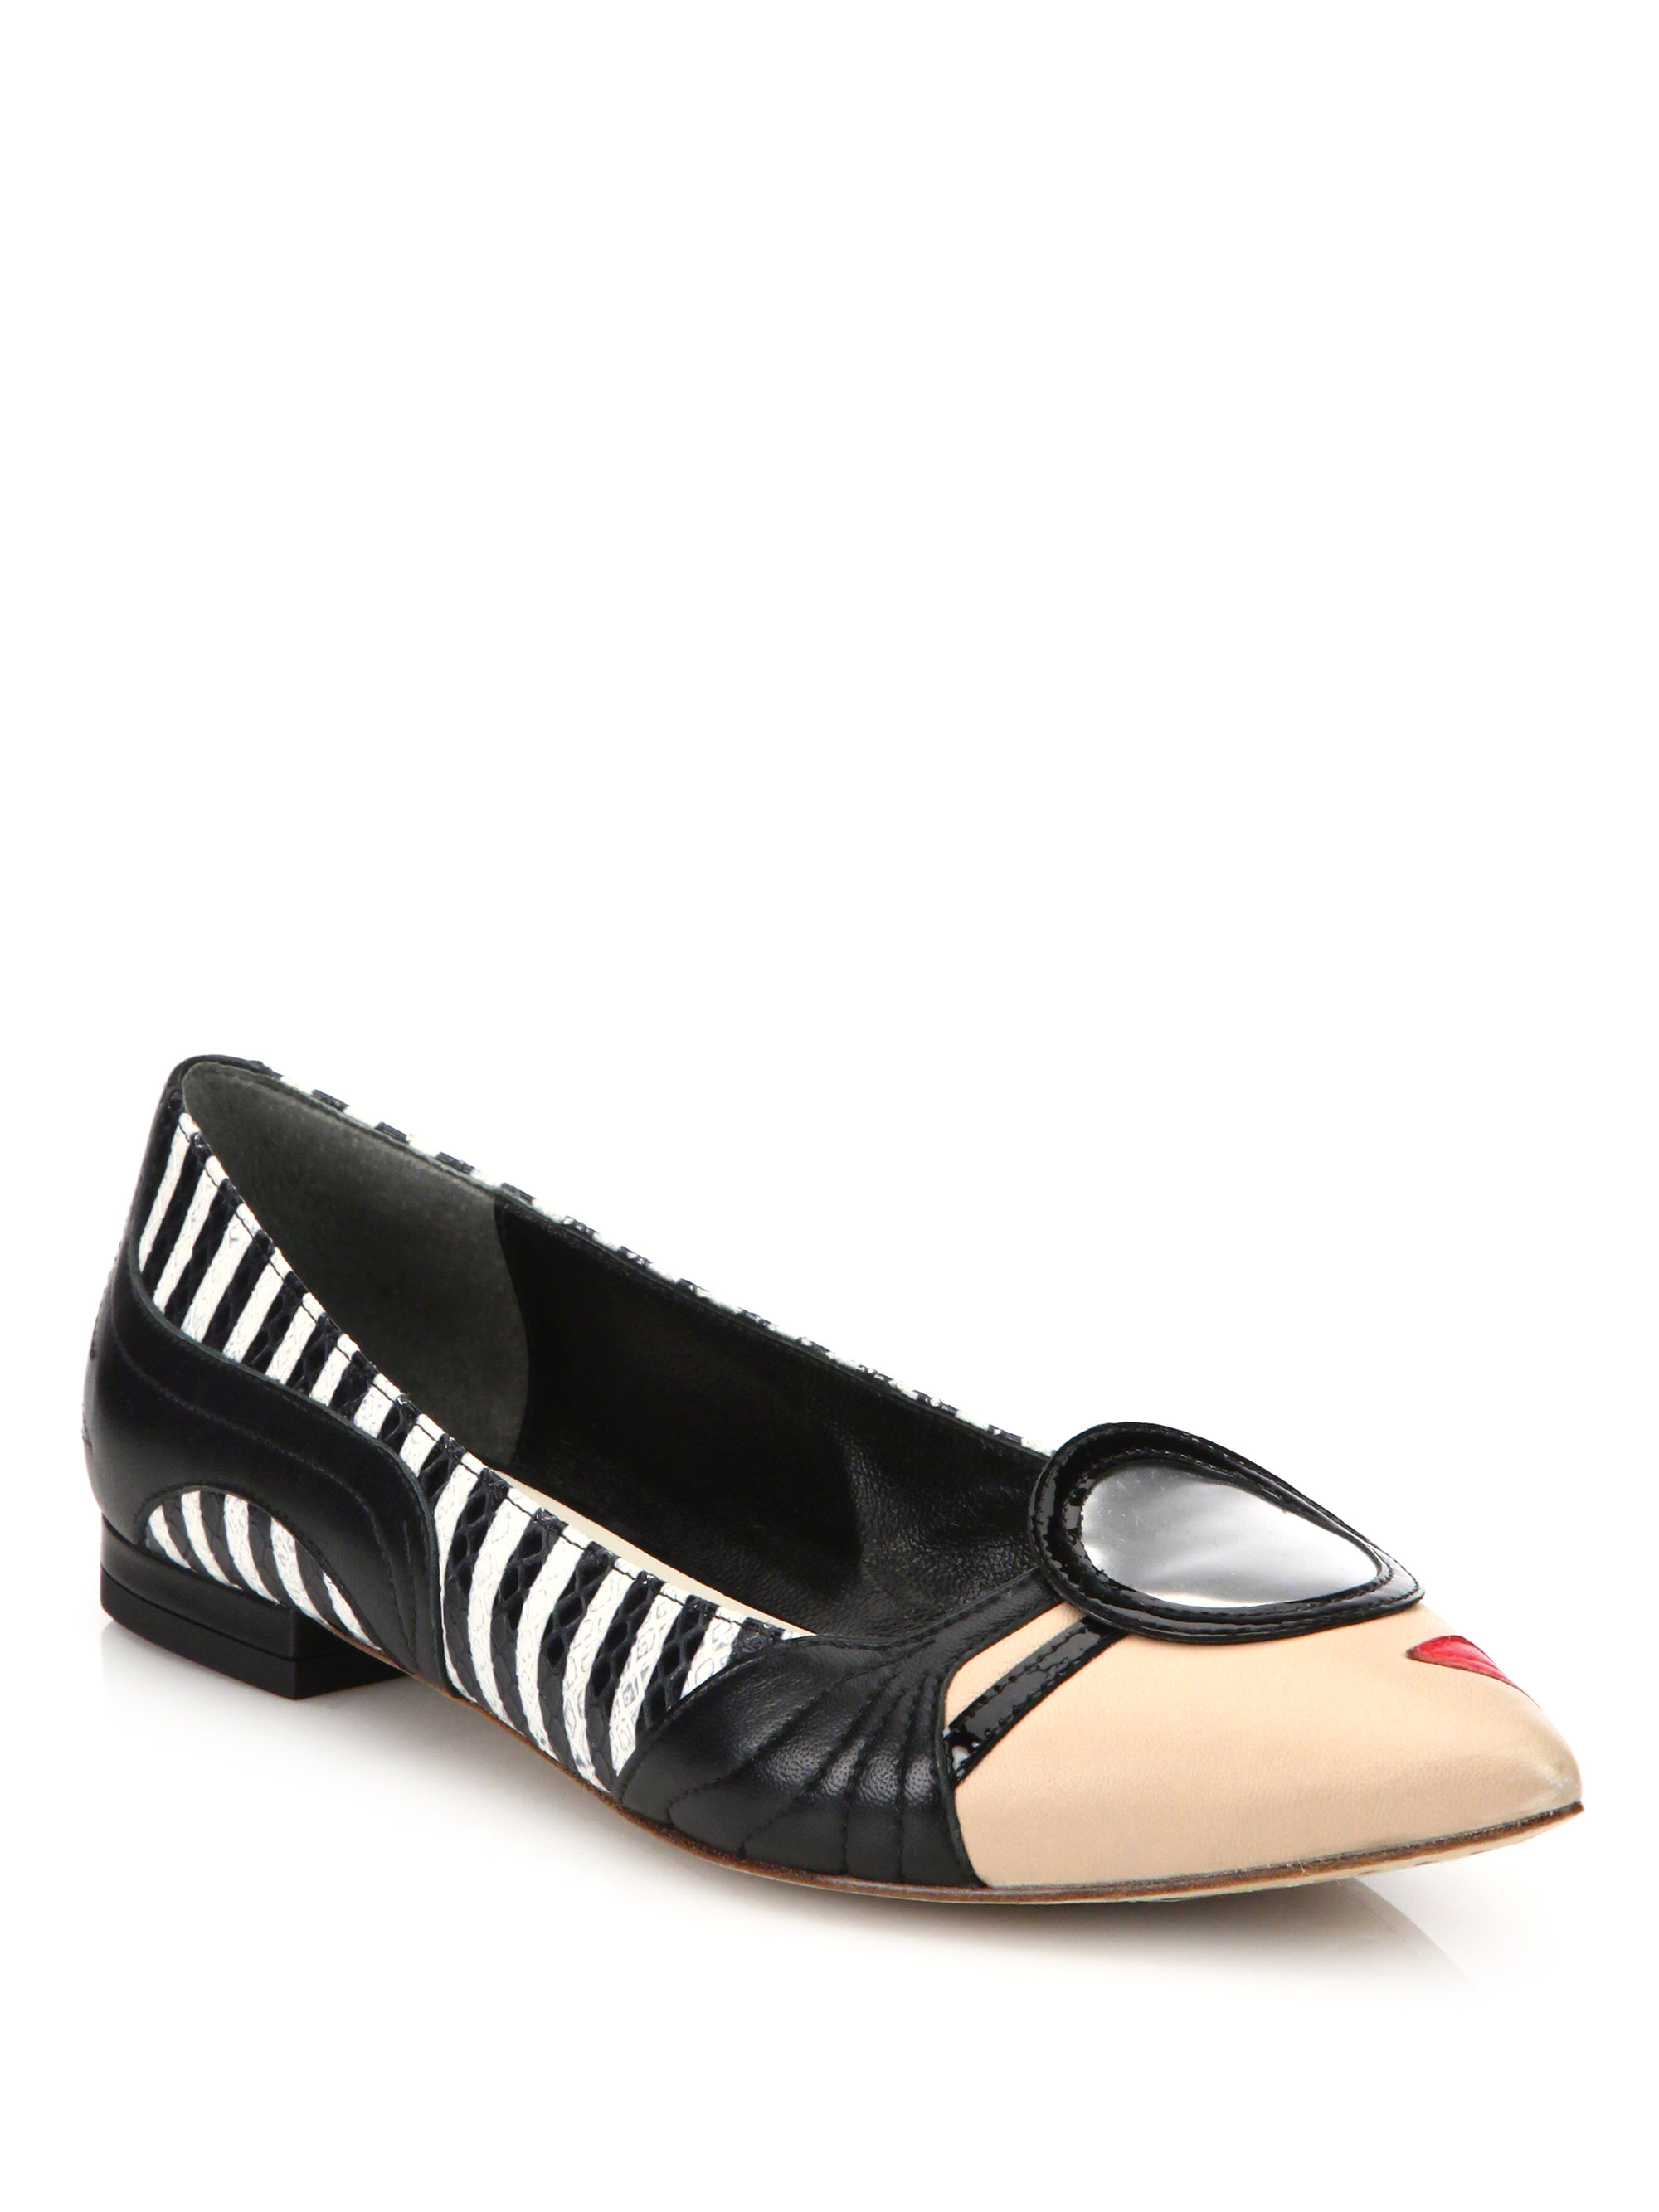 Alice + olivia Stace Face Point-toe Leather Flats